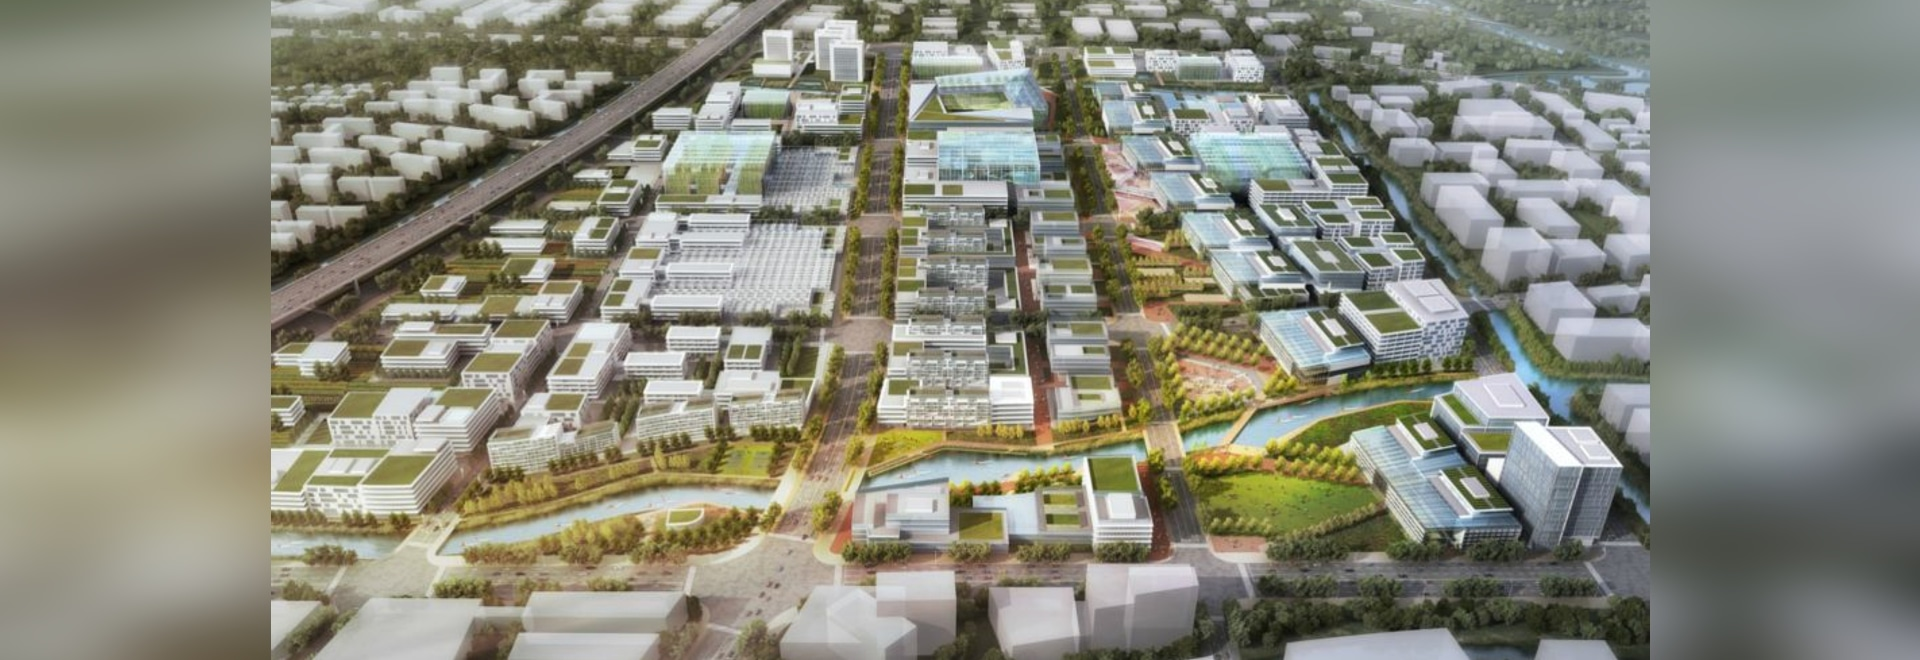 Shanghai is planning a massive 100-hectare vertical farm to feed 24 million people